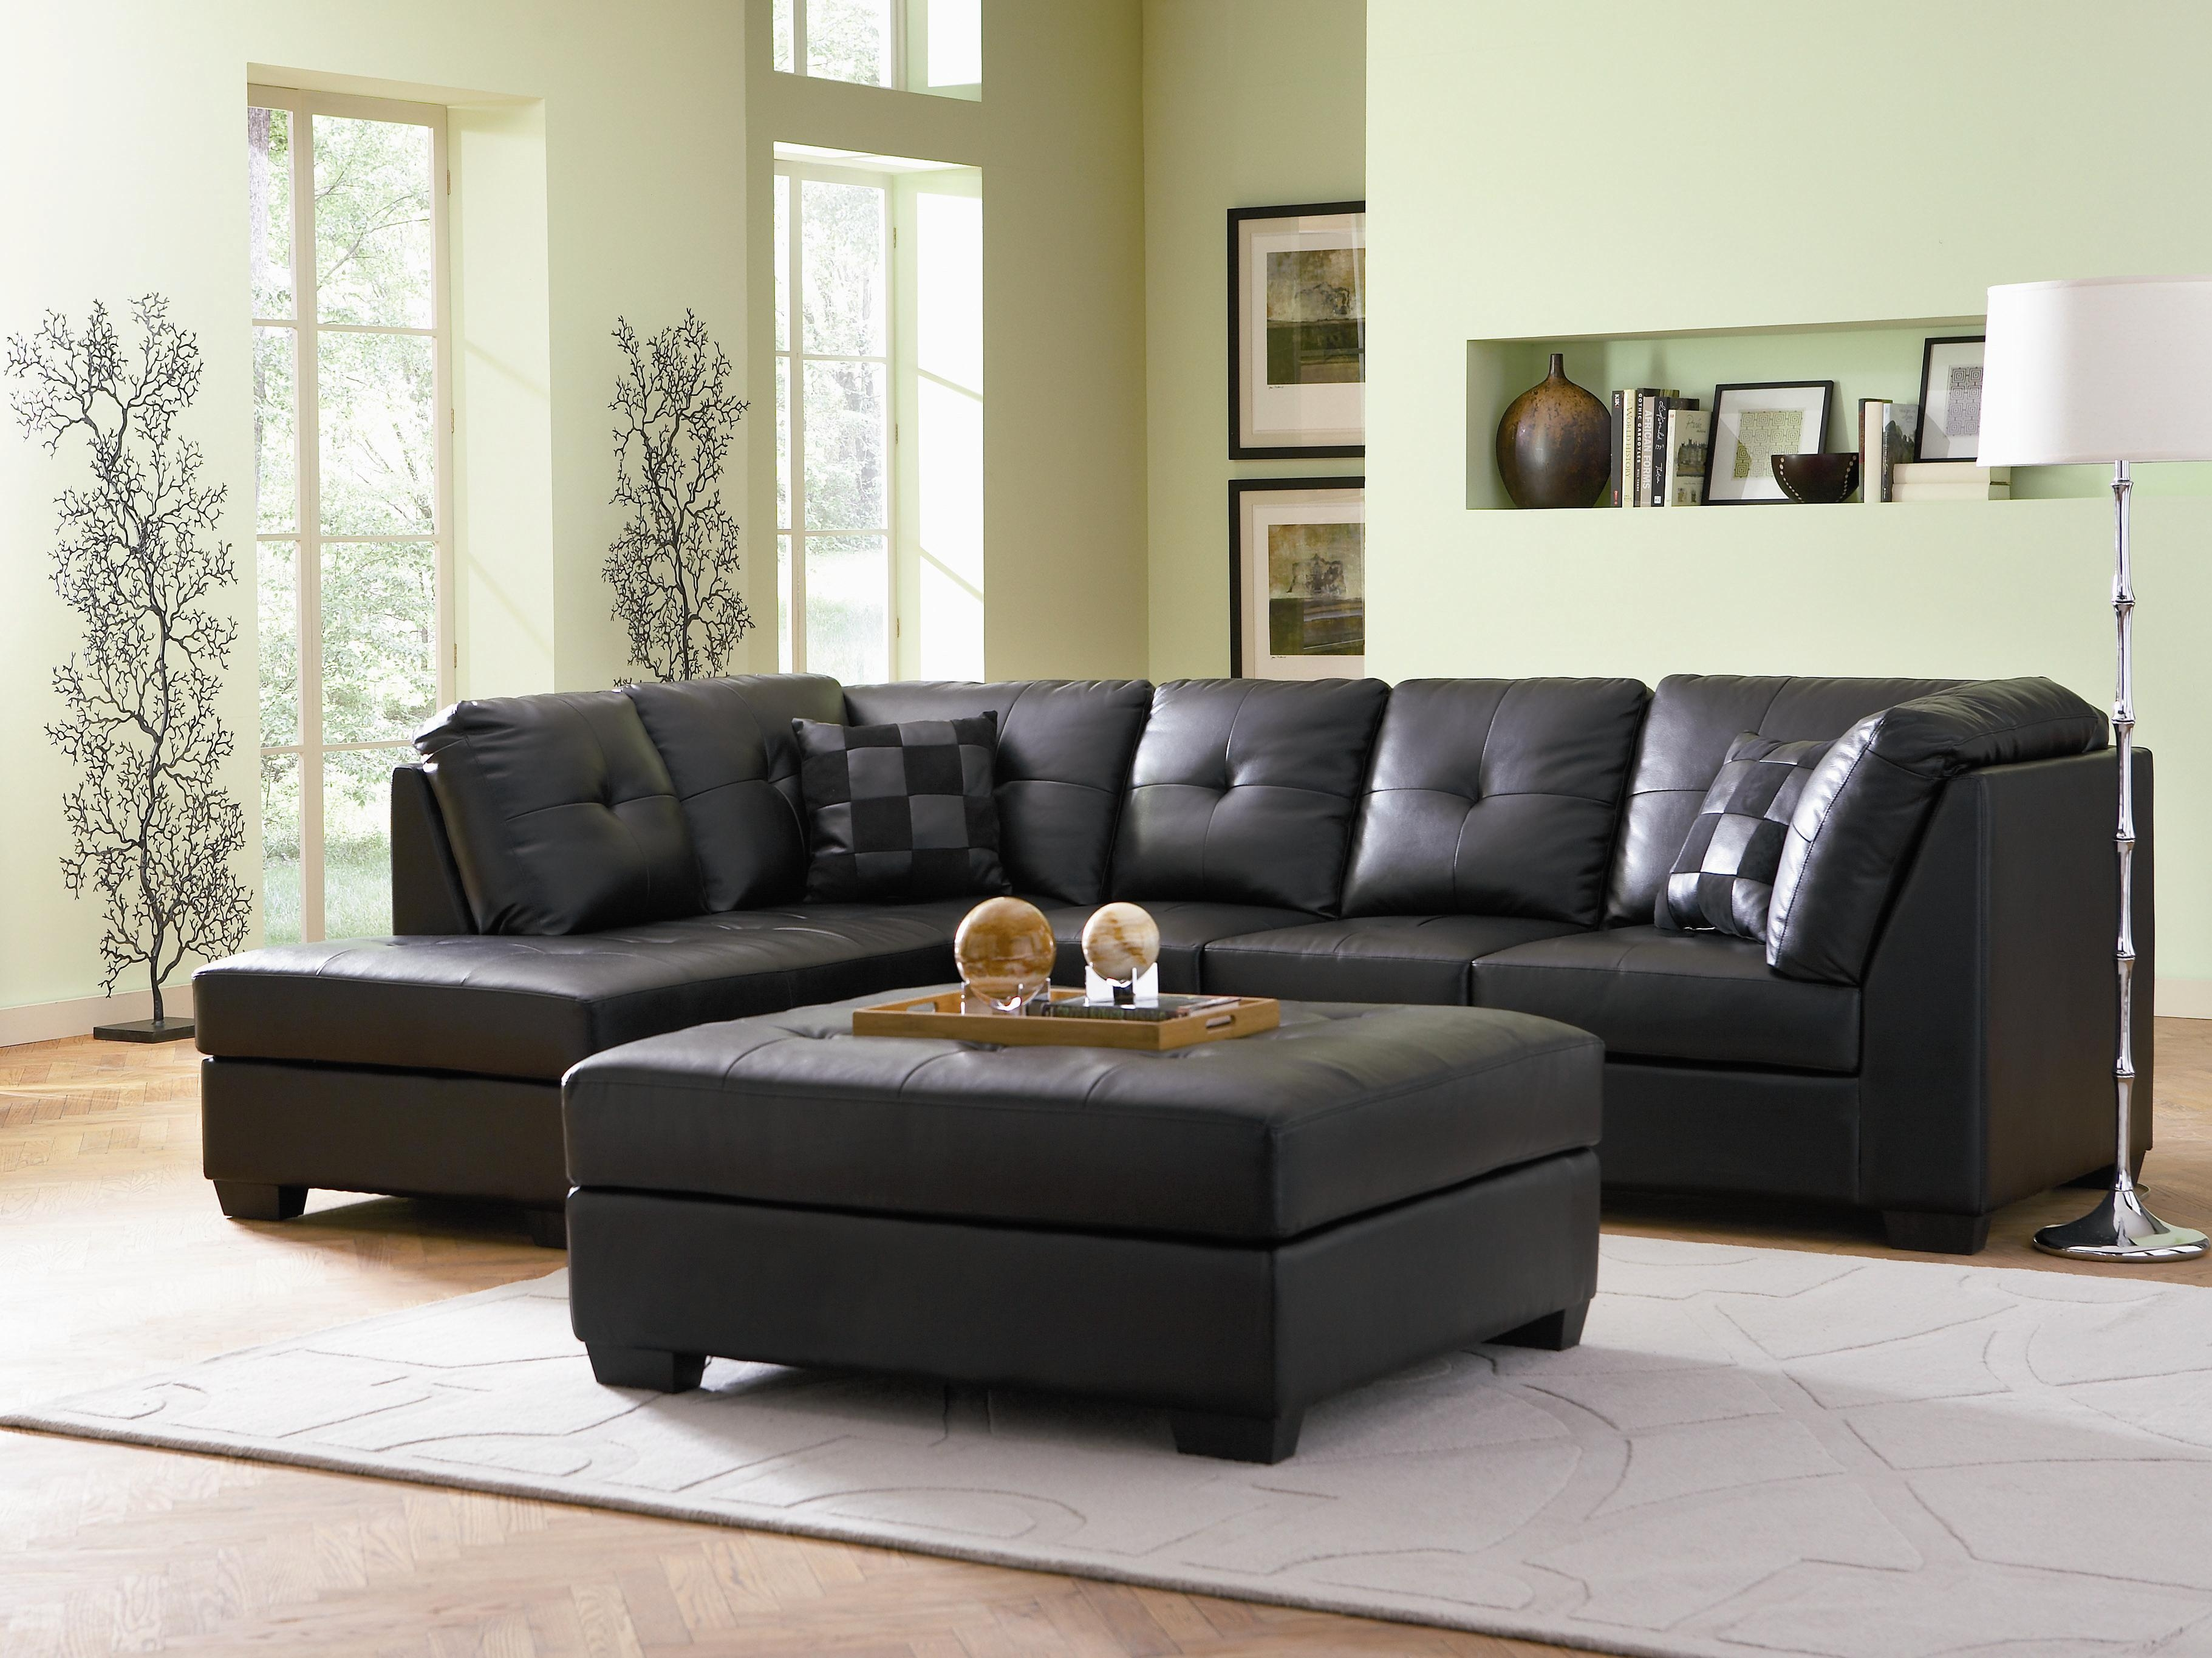 Popular Photo of Contemporary Black Leather Sectional Sofa Left Side Chaise